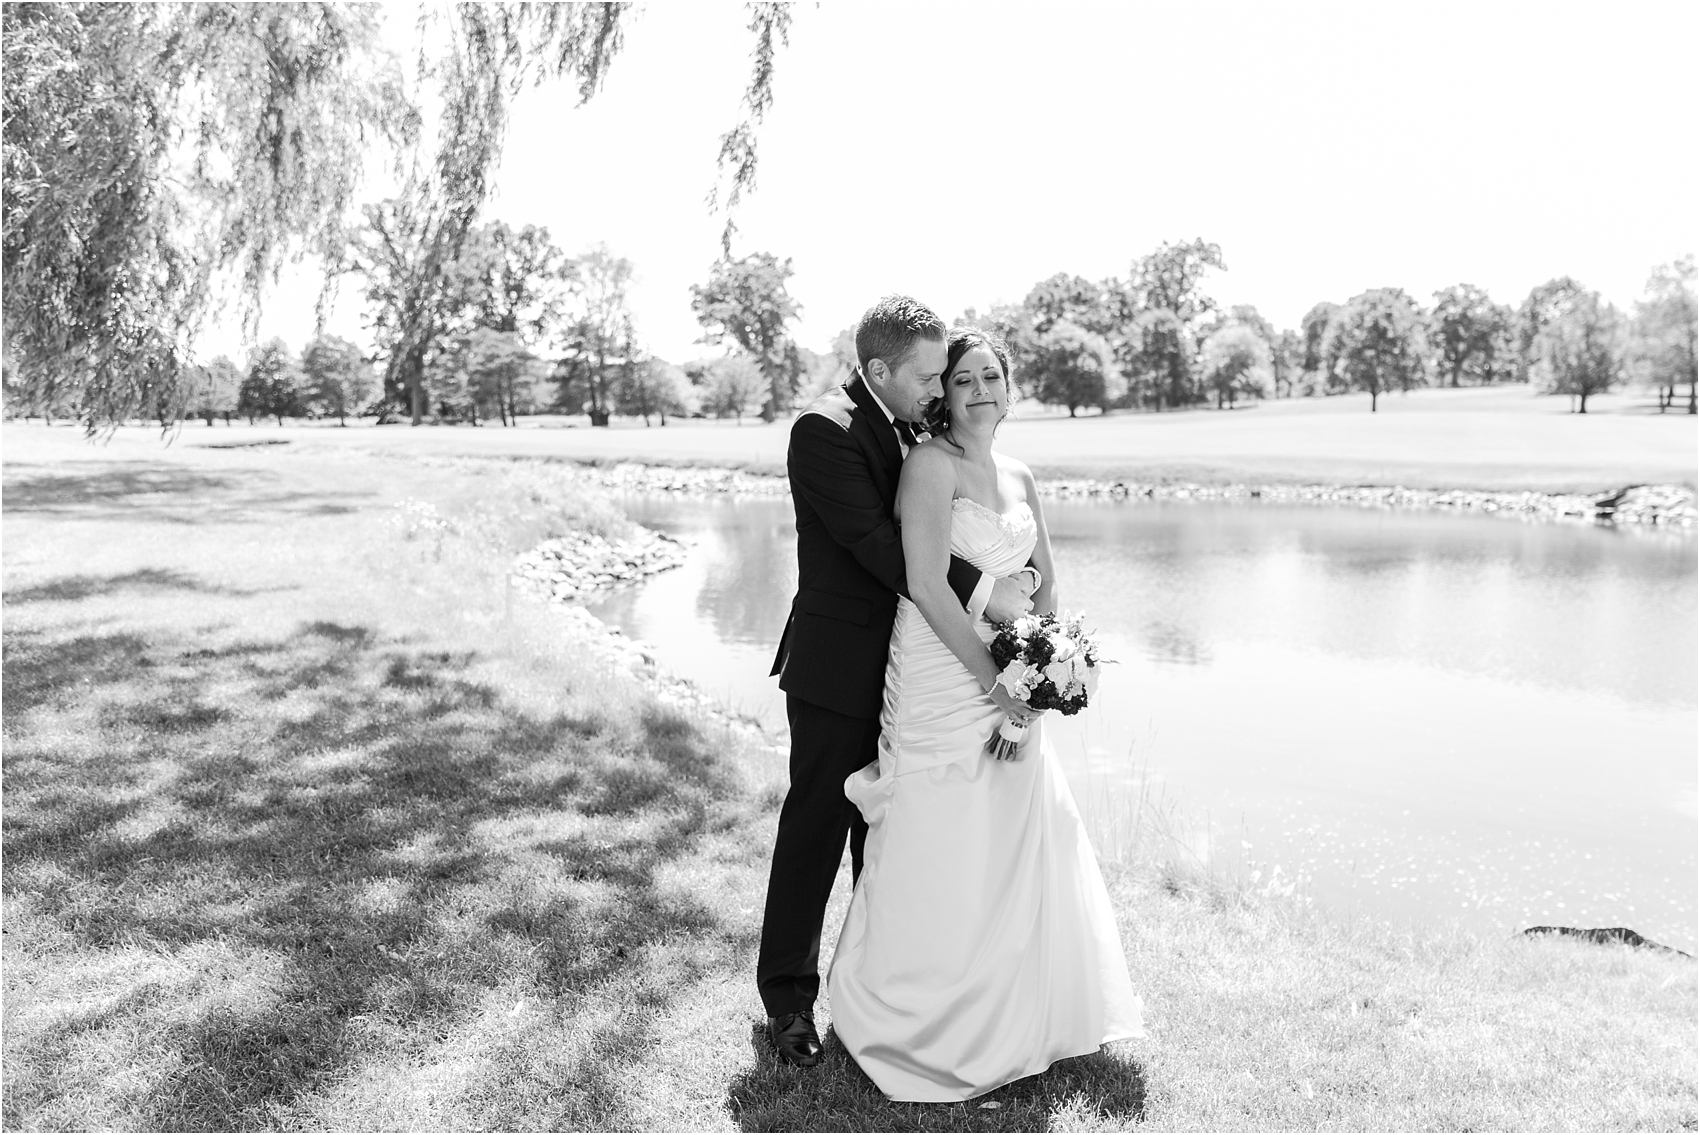 classic-wedding-photos-at-great-oaks-country-club-in-rochester-hills-mi-by-courtney-carolyn-photography_0049.jpg